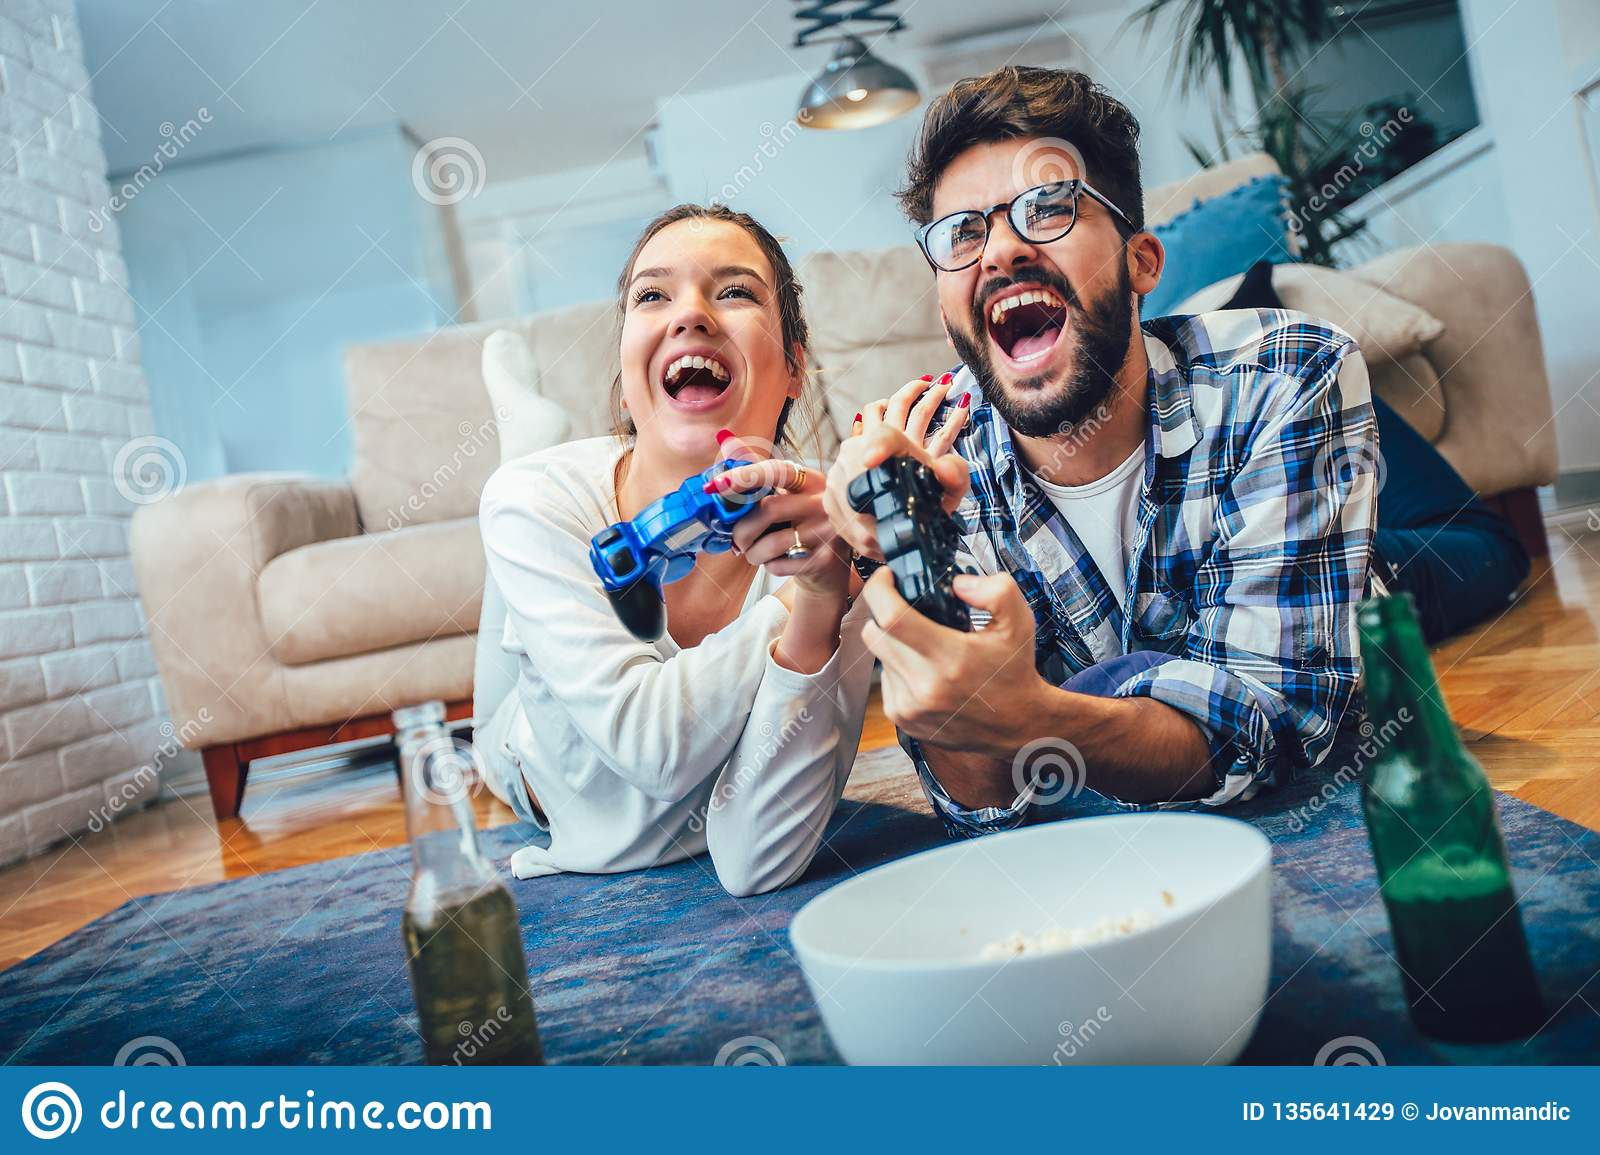 Cute Couple Playing Video Games Stock Image Image Of Game Female 135641429